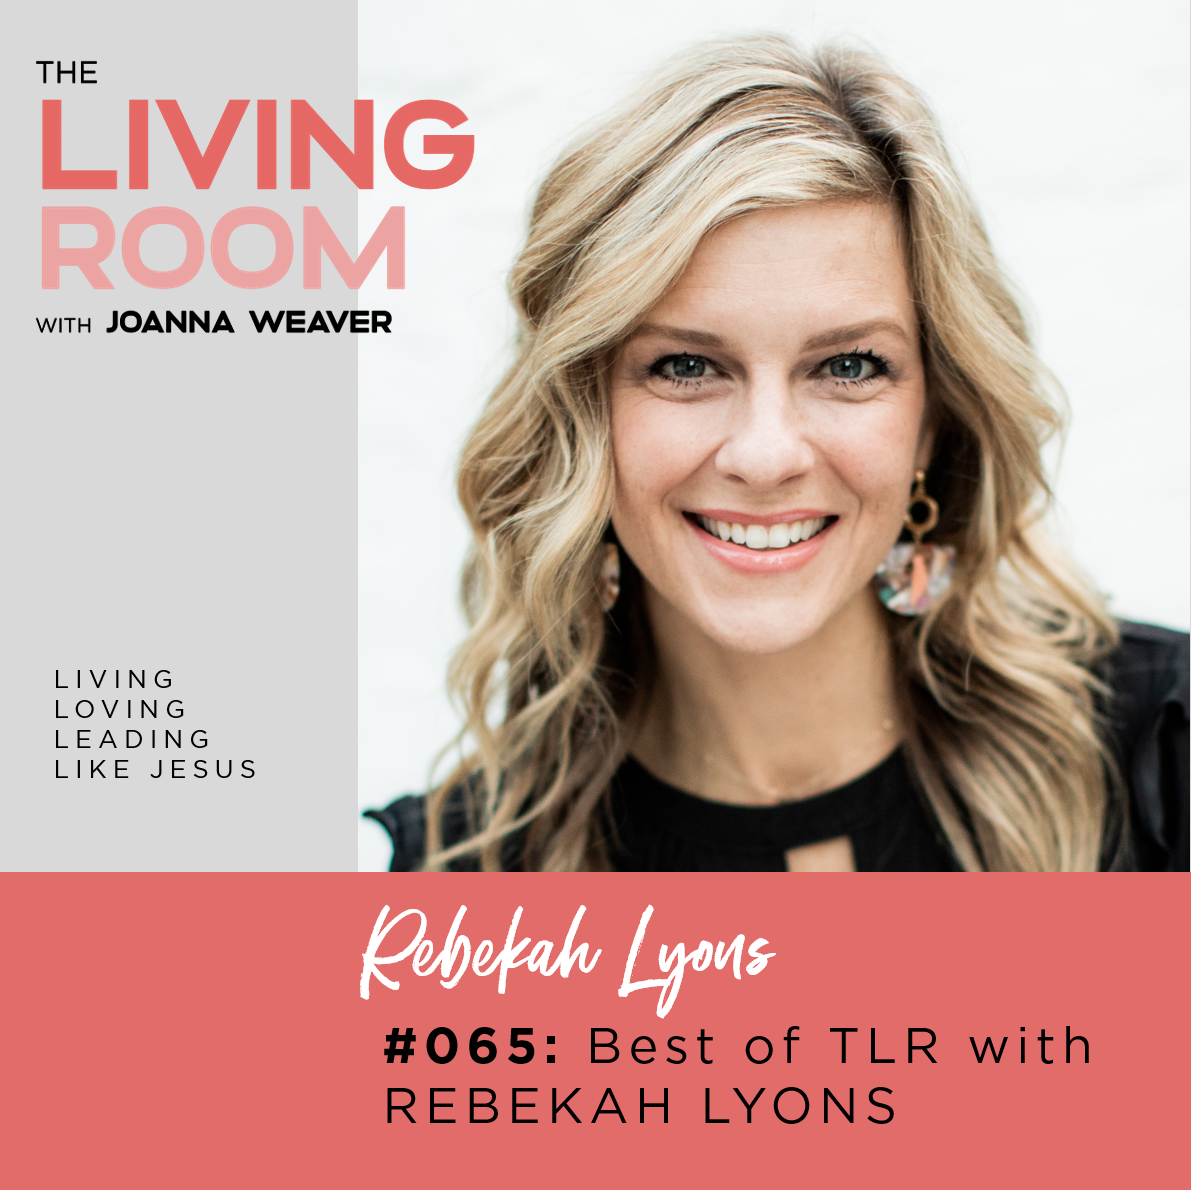 TLR 065 - Rebekah Lyons - The Living Room with Joanna Weaver